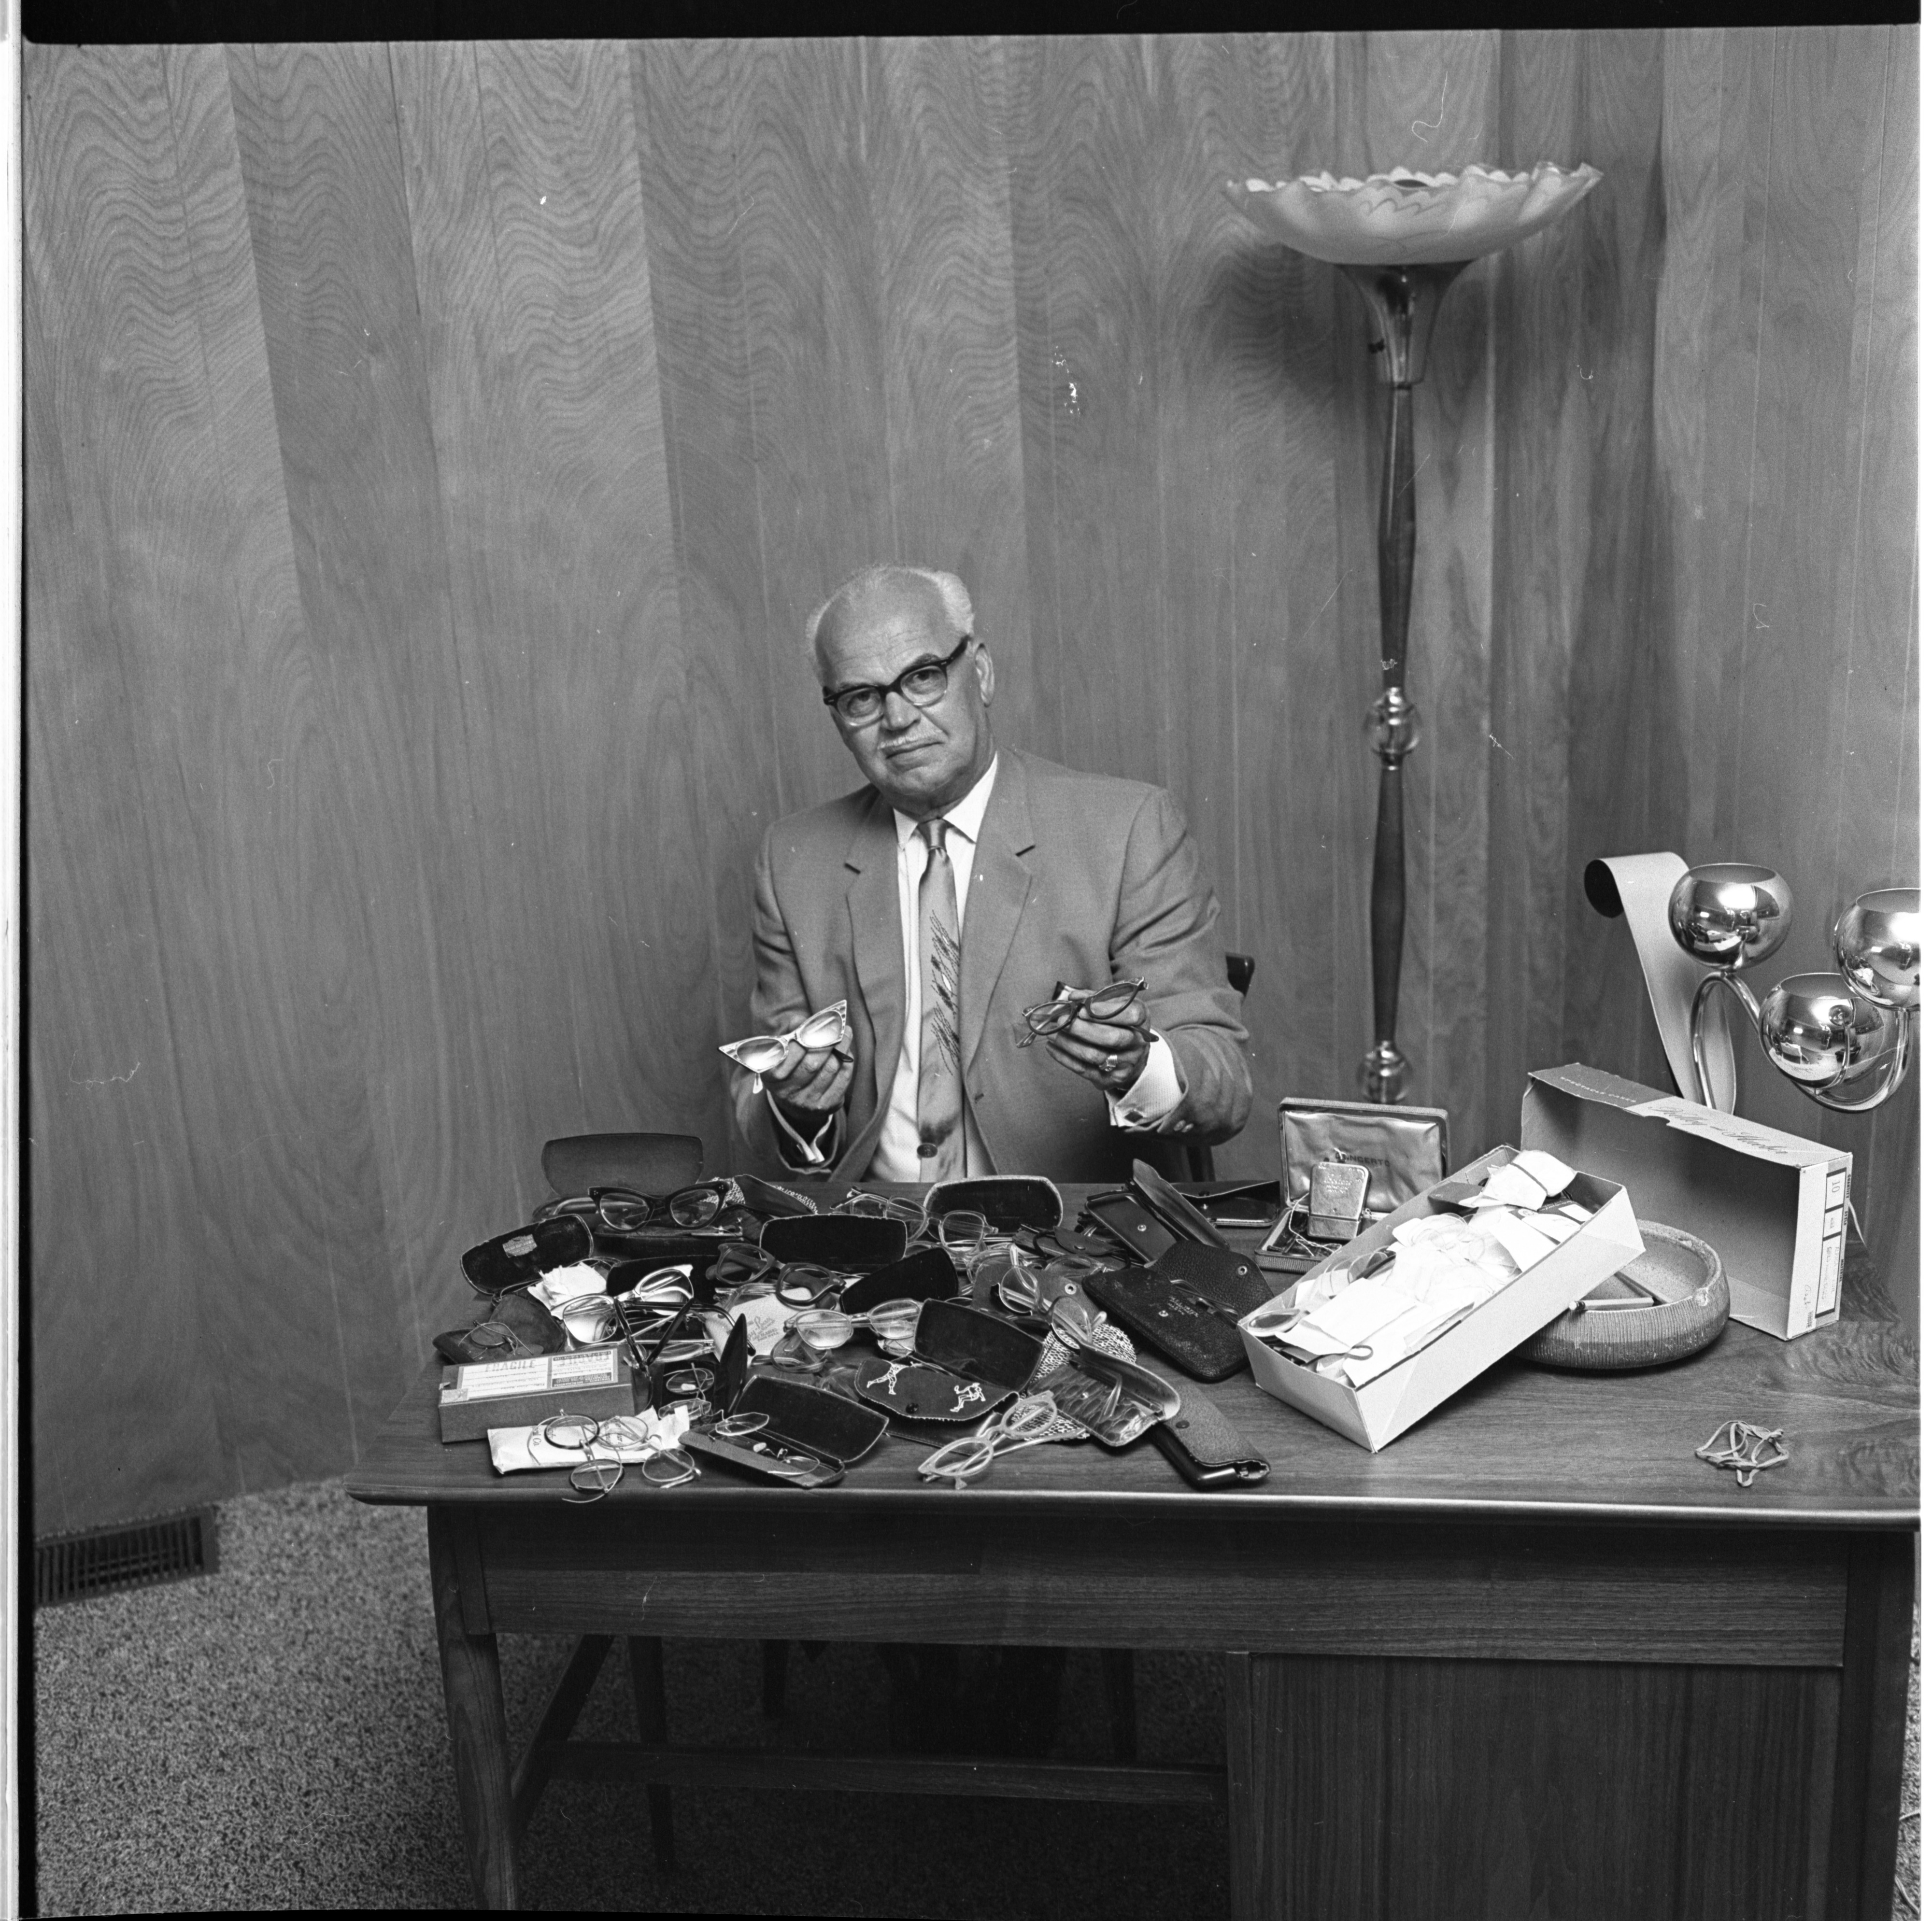 Frank Staffan With Eyeglasses Donated To The Lions Club, June 1963 image